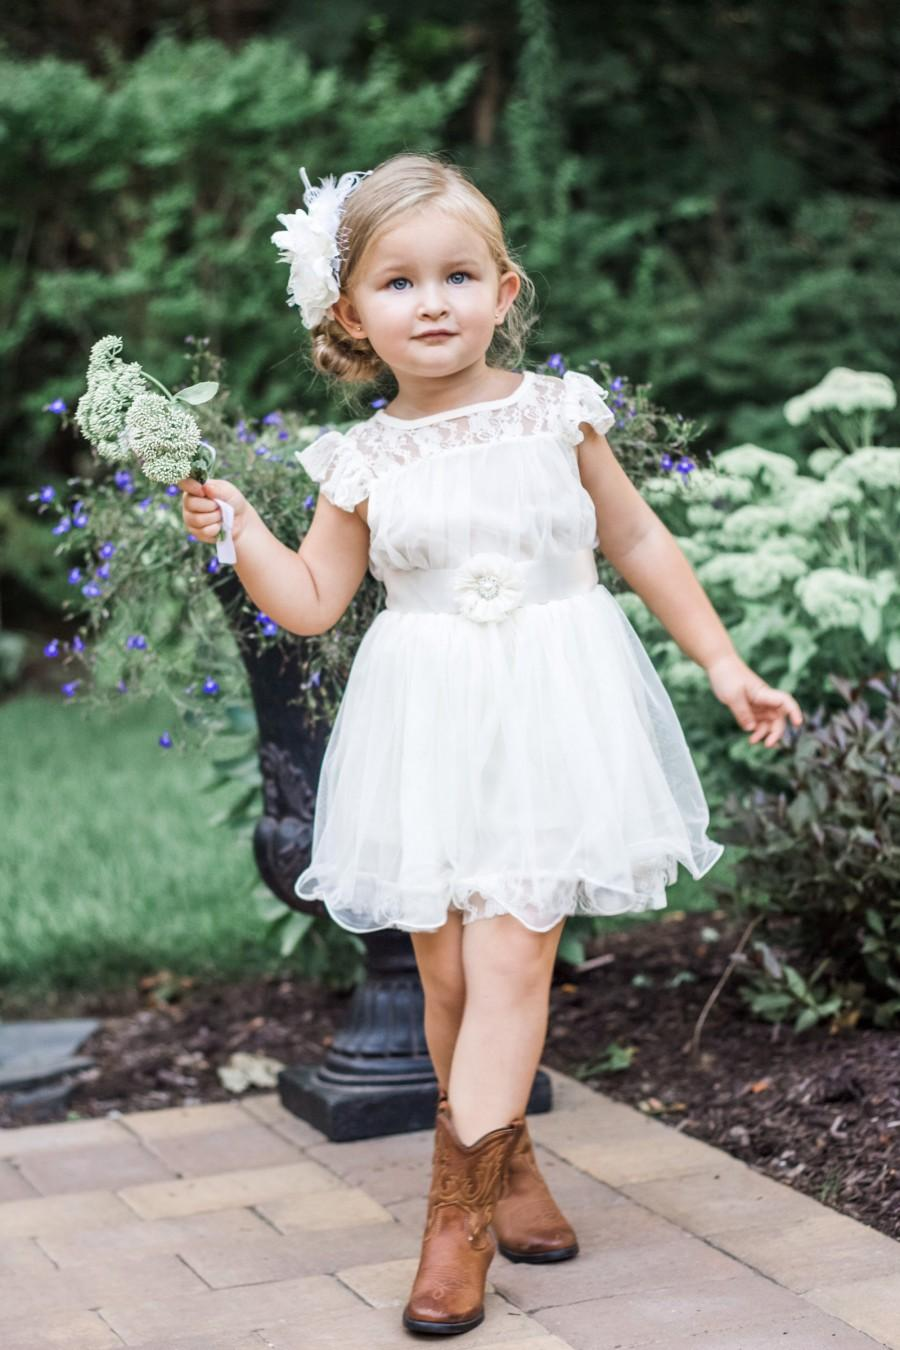 Свадьба - The Original Charlotte - Ivory, Lace, Chiffon Flower Girl Dress, made for girls, toddlers, ages 1T, 2T,3T,4T, 5T, 6, 7, 8, 9/10, 11/12,13/14